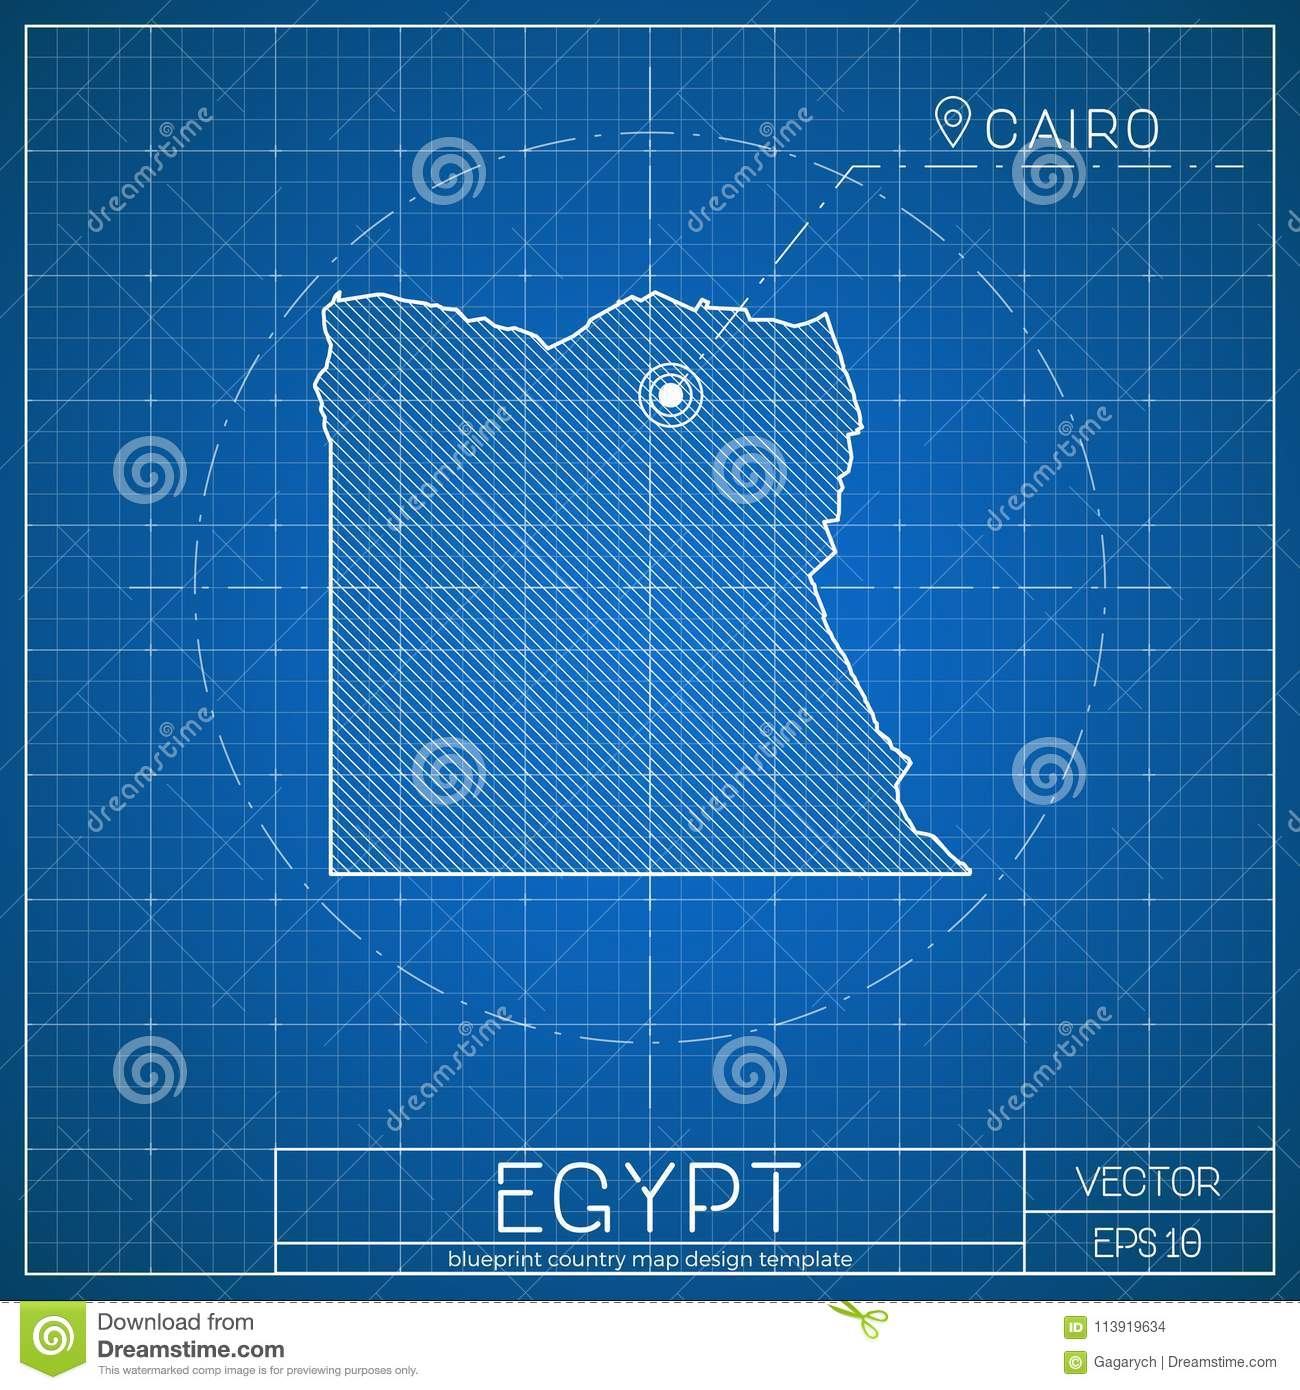 Egypt Blueprint Map Template With Capital City. Stock Vector ... on